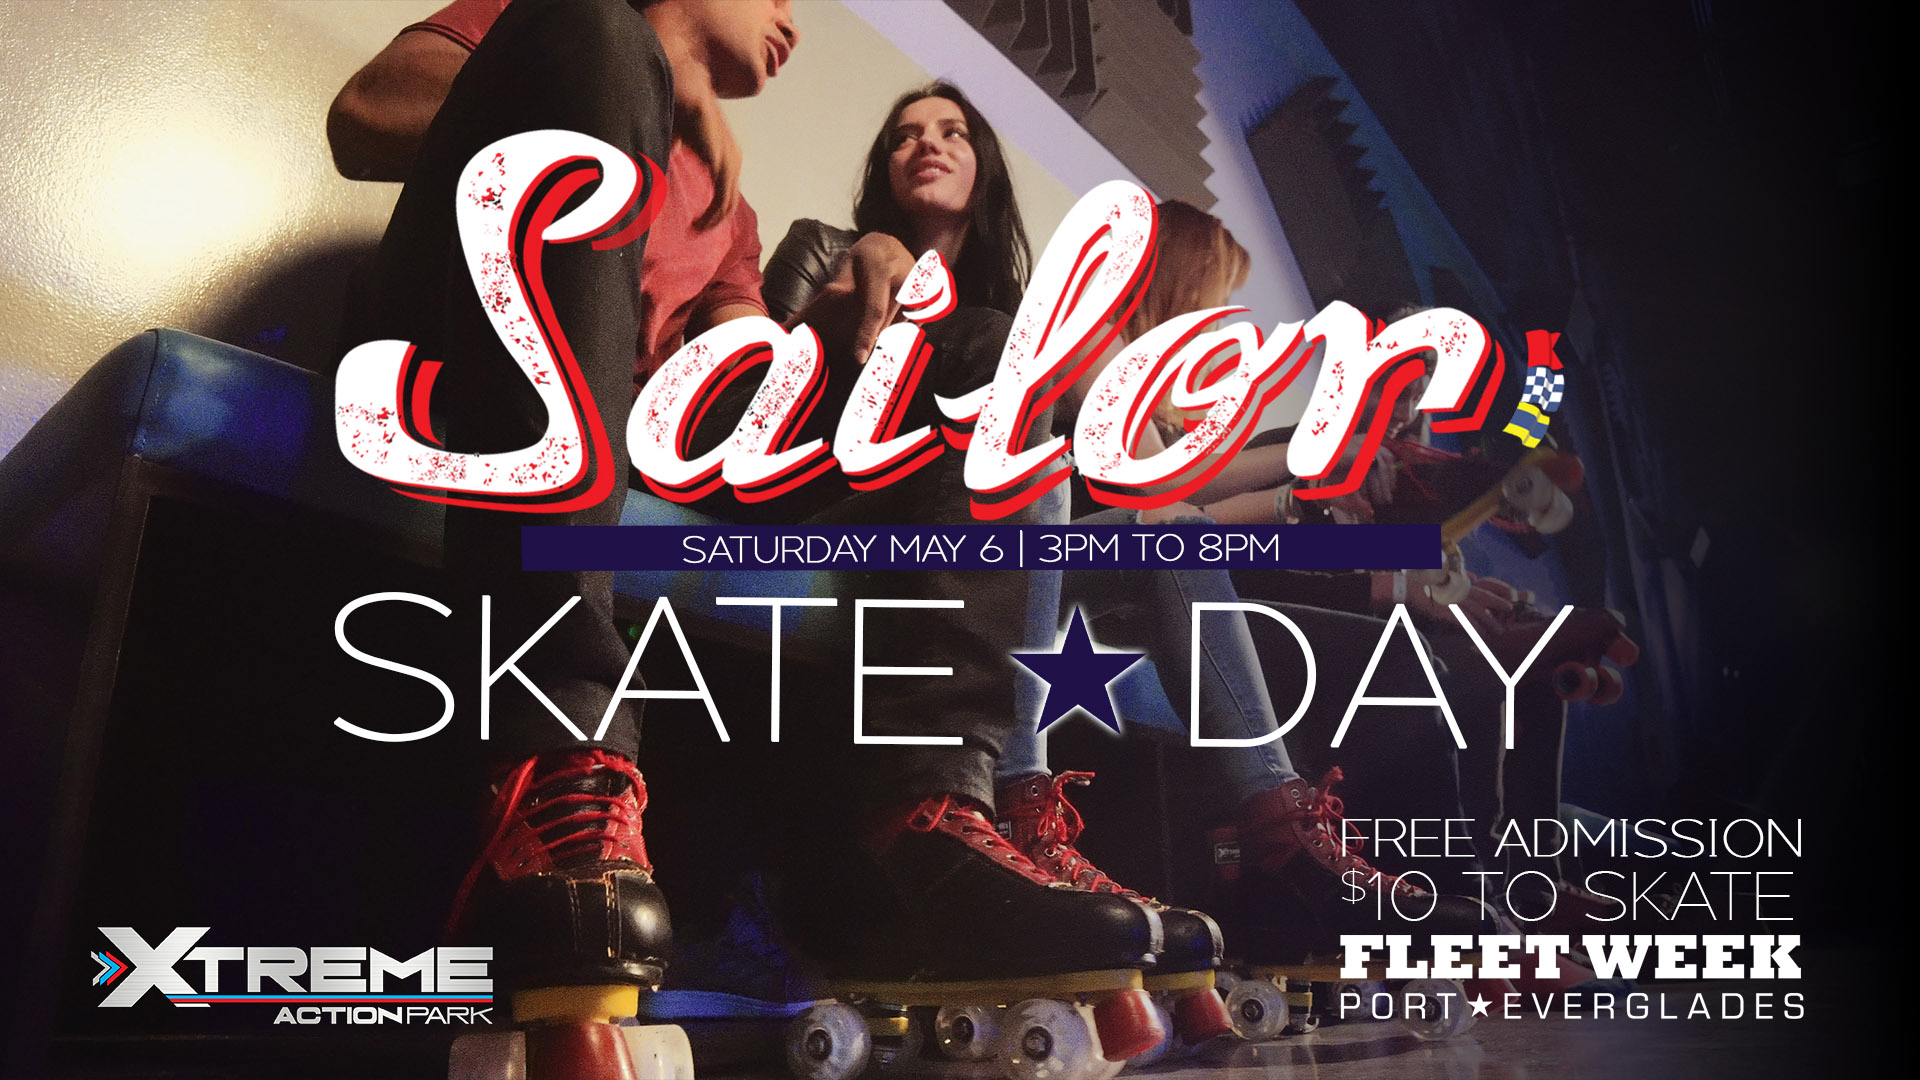 Fleet Week Sailor Skate At Xtreme Action Park